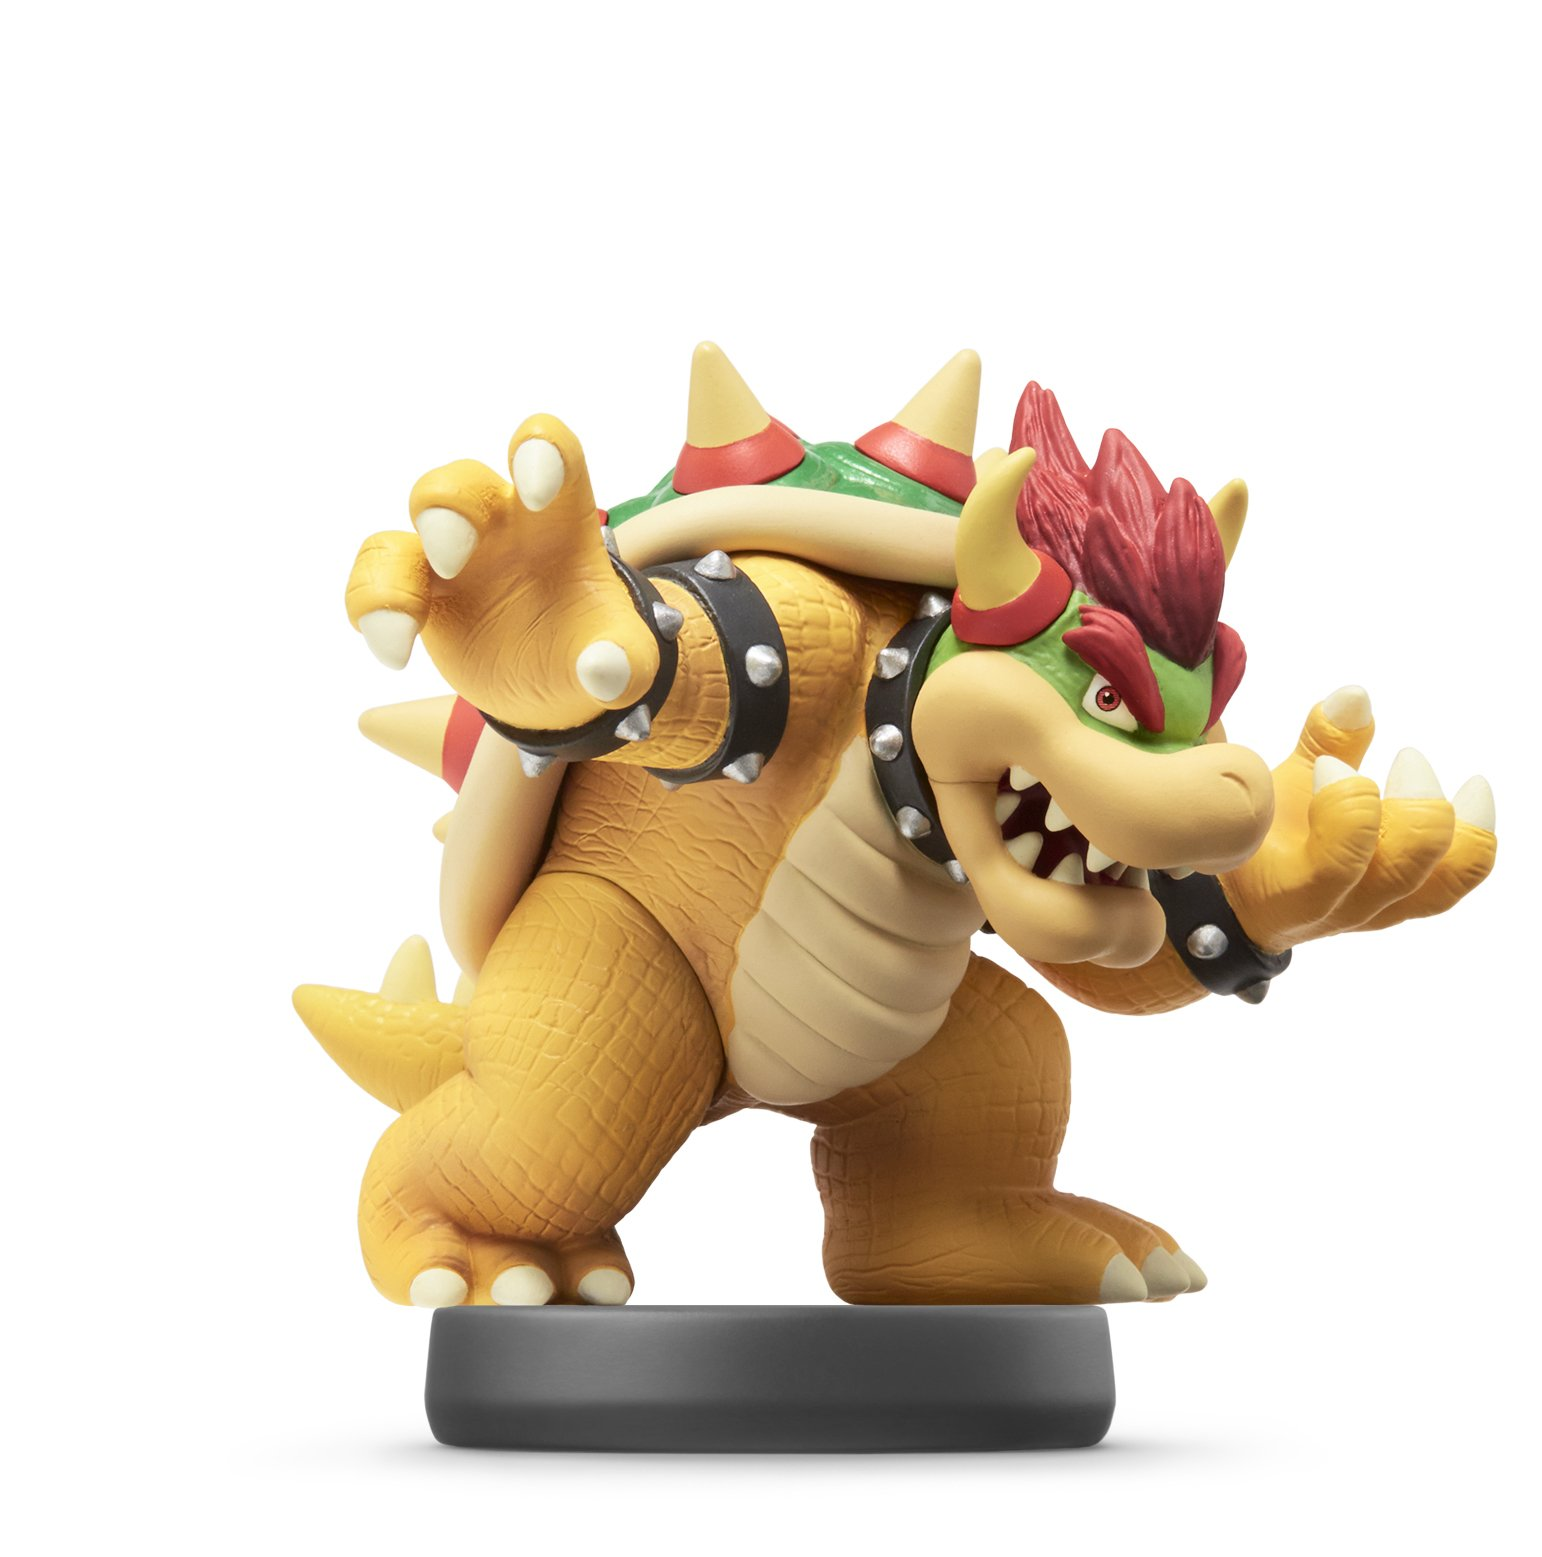 Bowser amiibo (Super Smash Bros Series) by Nintendo